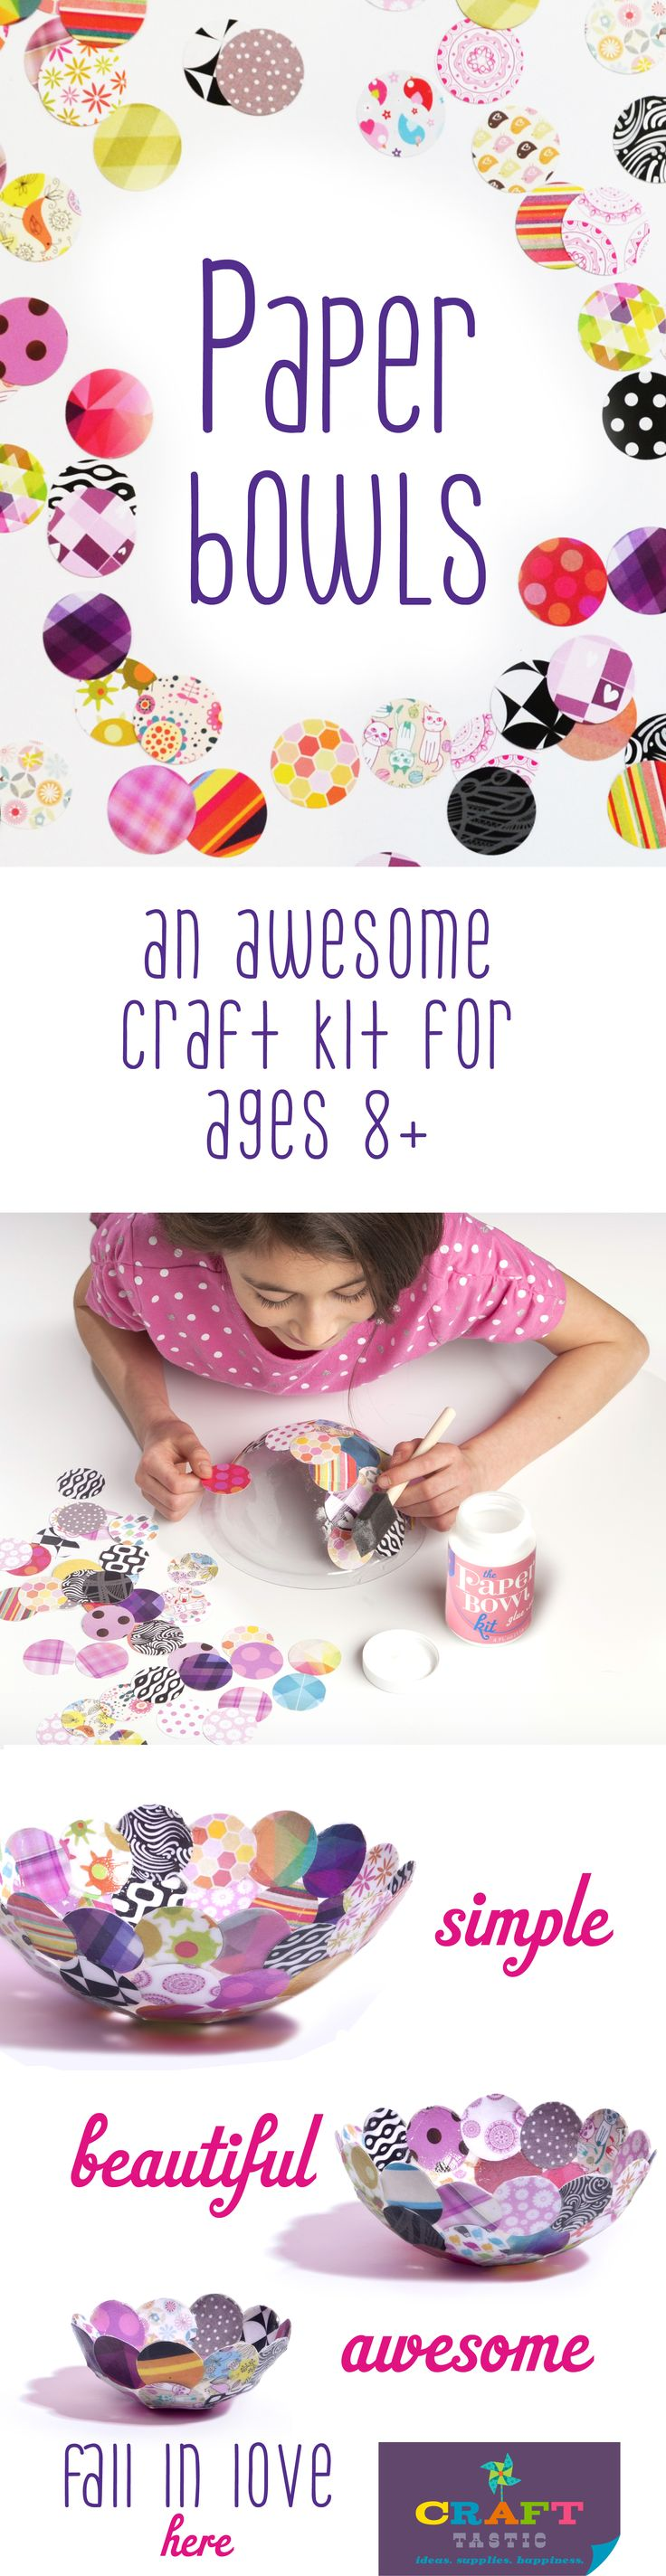 Have a crafty tween or teen? Check out Craft-tastic for modern craft kits that are fast and fun for ages 8+. With our paper bowl kit, you apply colorful paper circles over our bowl form with glue, let dry, and voila! Craft-tastic kits make the perfect gift for creative kids!